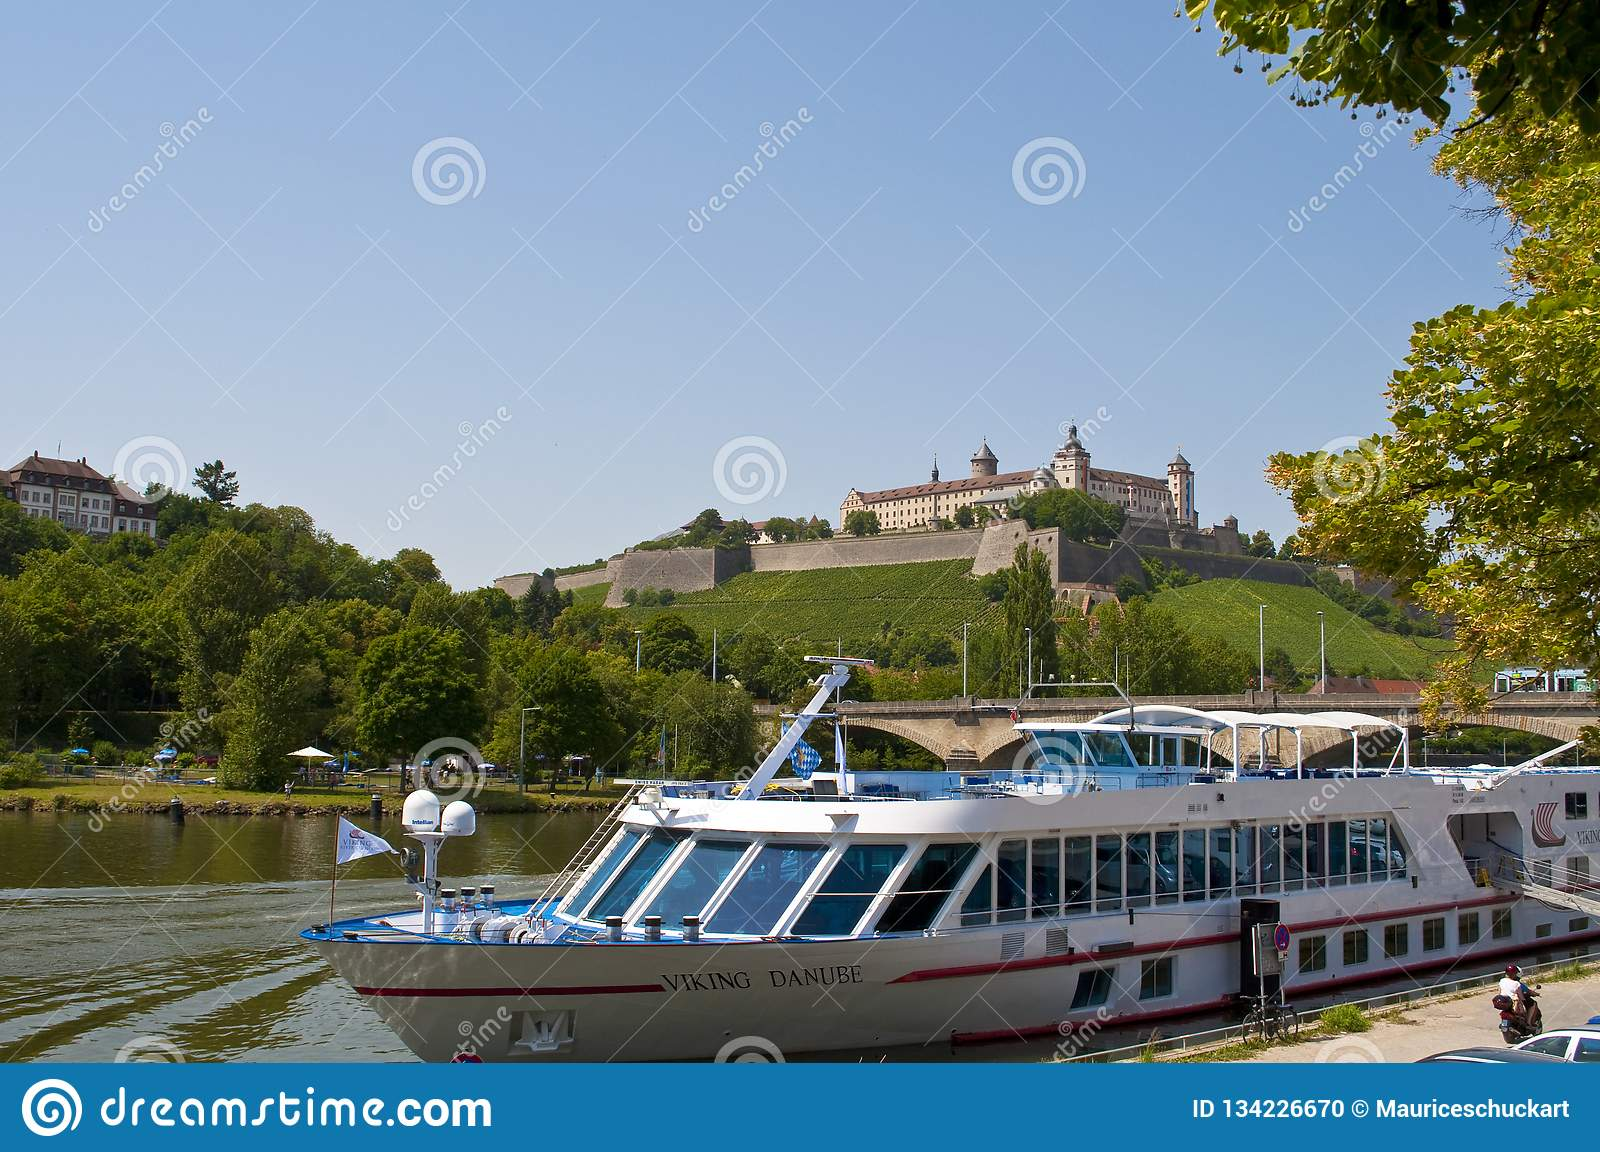 German old town würzburg at the river Danube